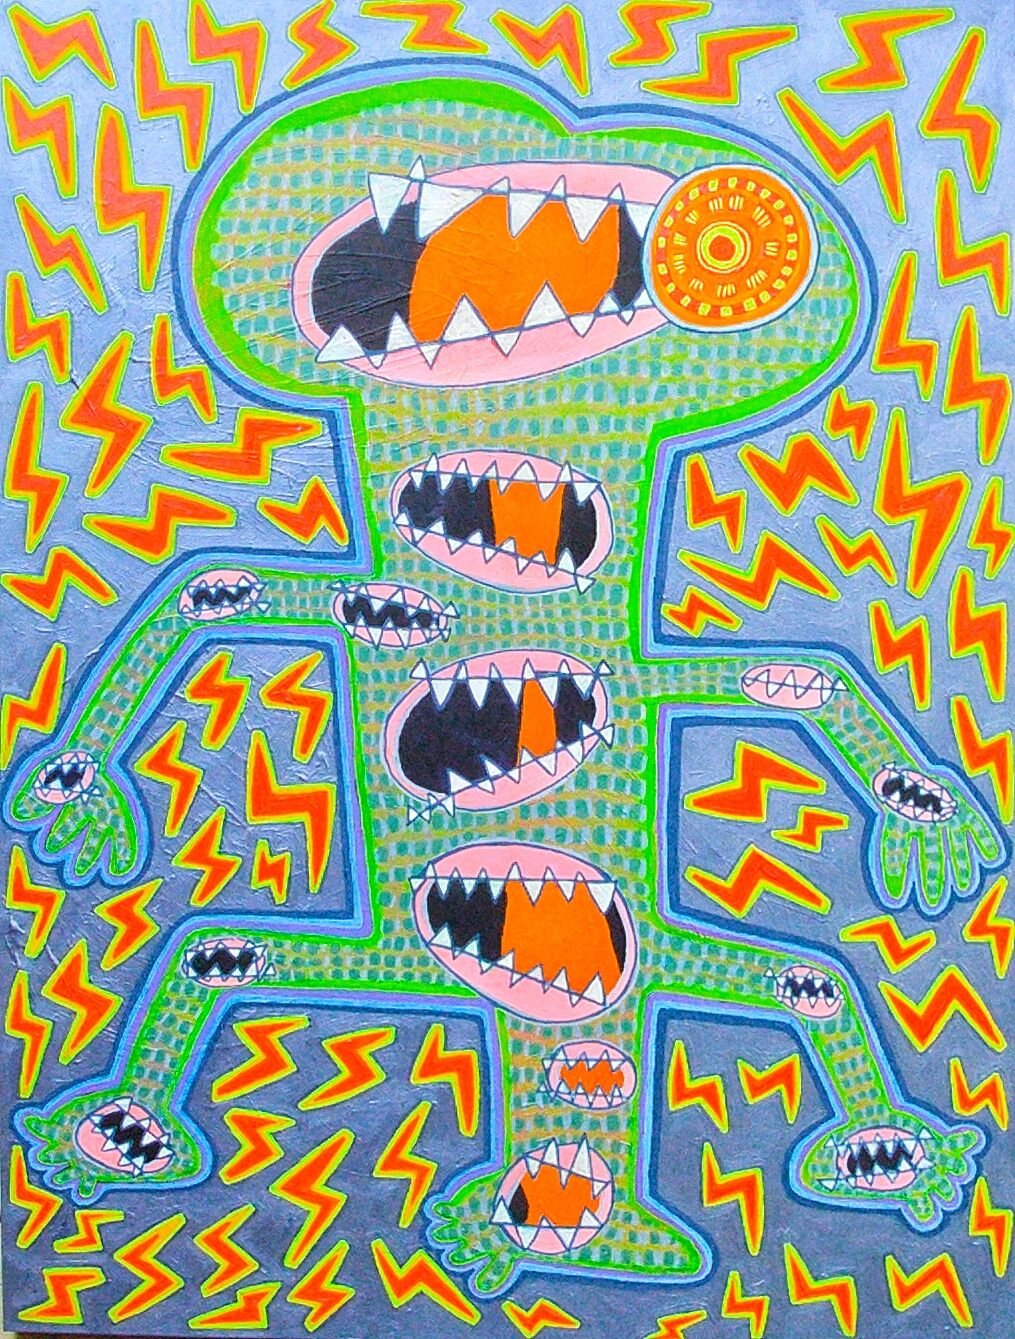 Skreeming MonstR , 2017, acrylic and phosphorescent paint on canvas, 40 x 30 inches  (inquire)